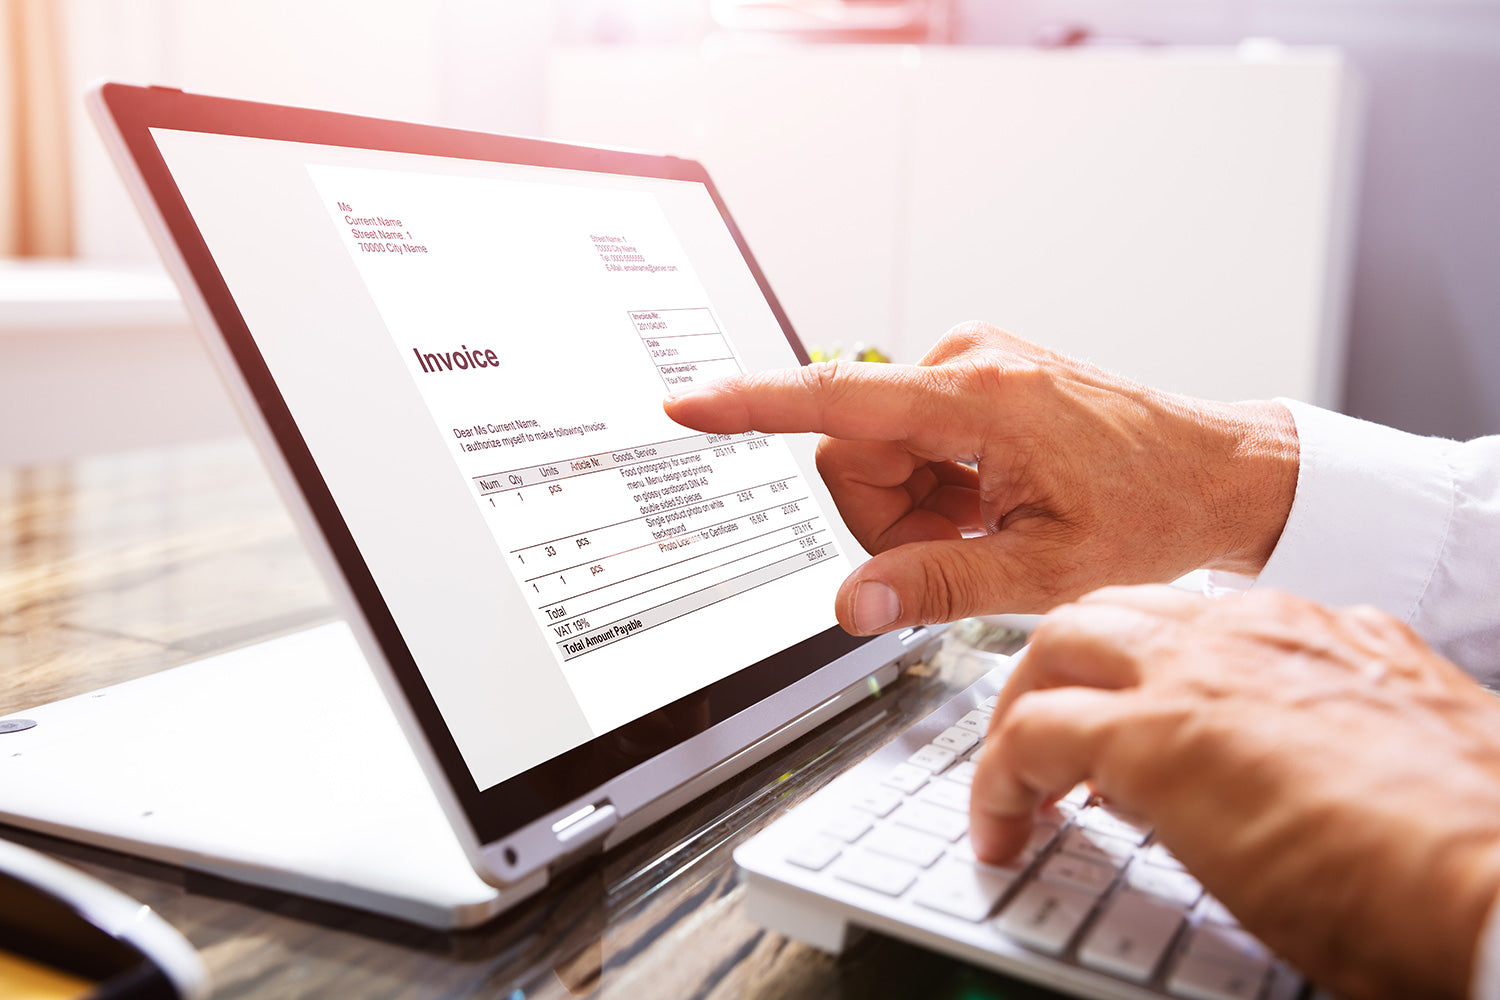 Automating accounts payable processing with generated invoice audit trails